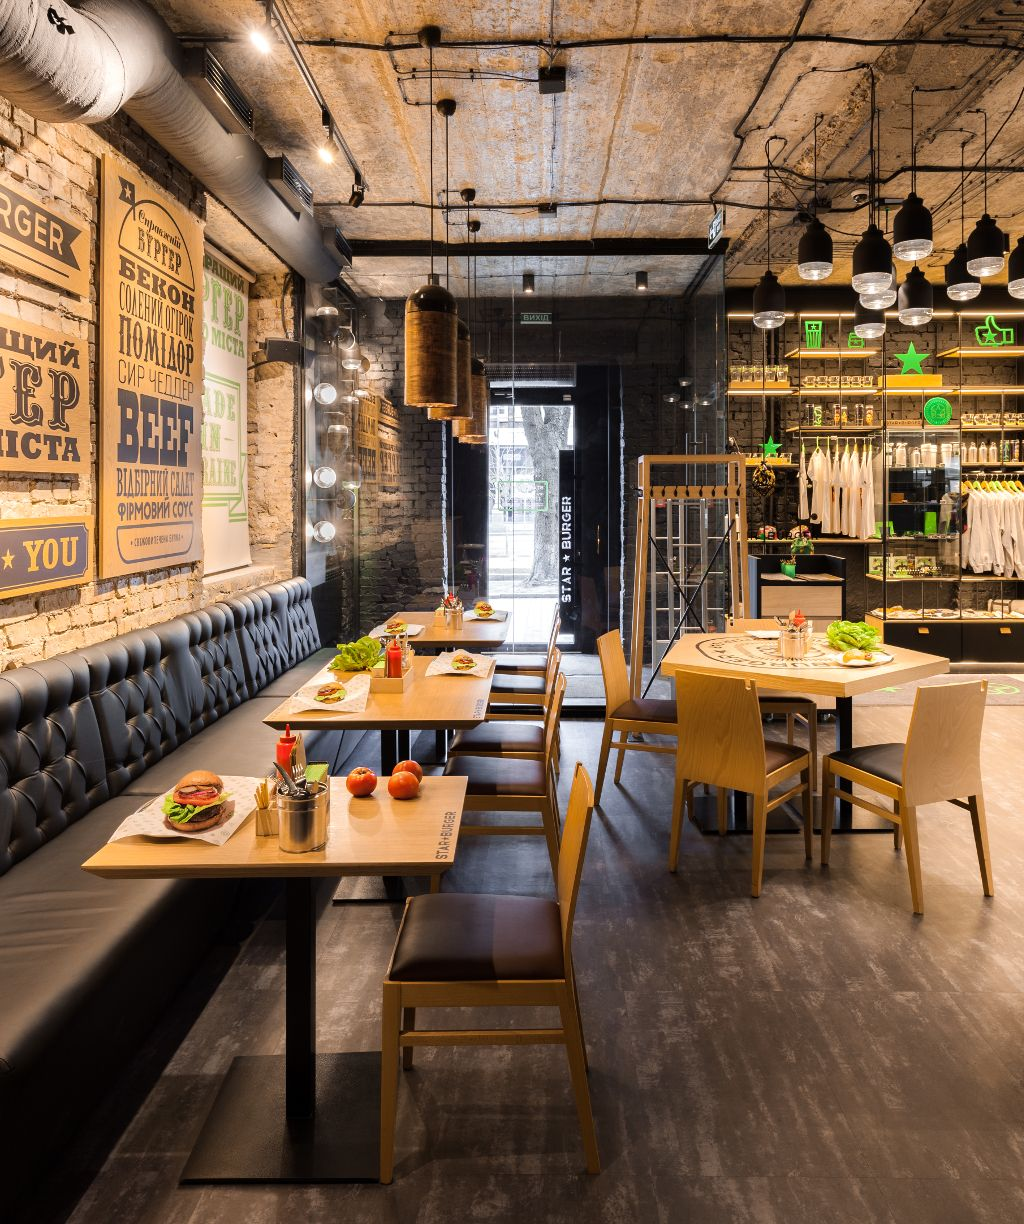 Restaurant Bar Interior Design: Star Burger (Kiev, Ukraine) Sergey Makhno Architects